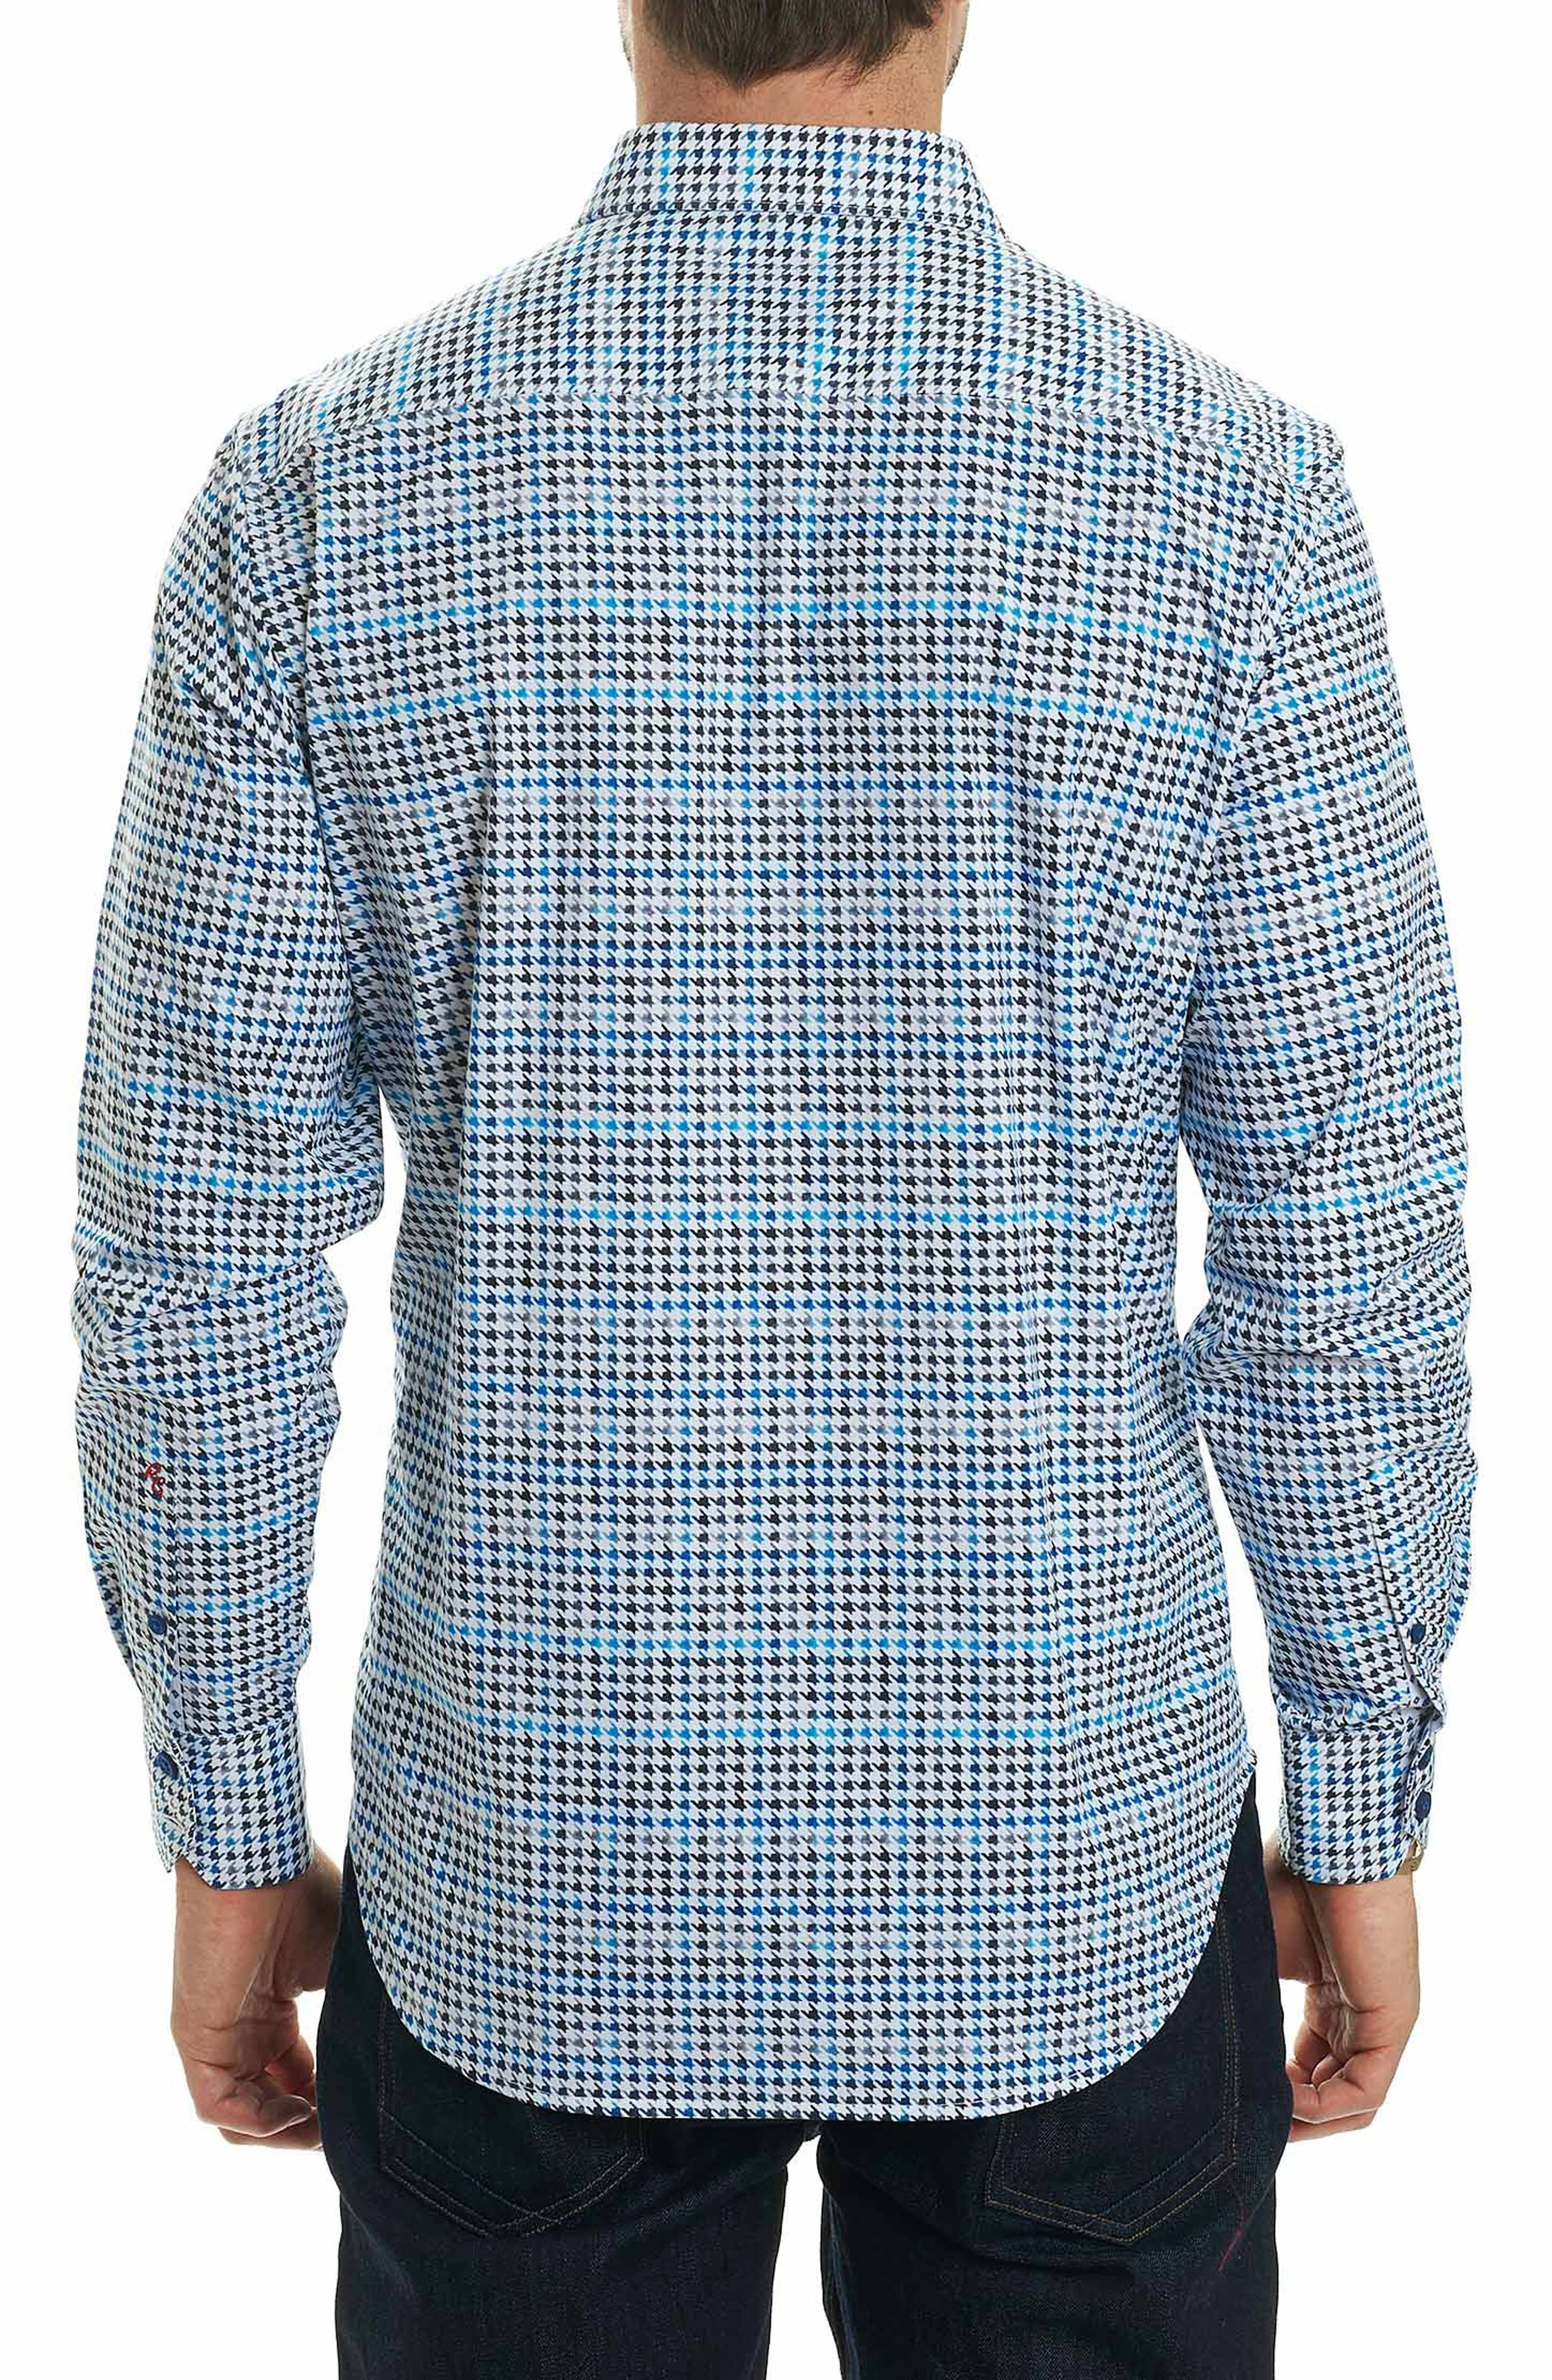 Rolf Classic Fit Houndstooth Print Sport Shirt,                             Alternate thumbnail 2, color,